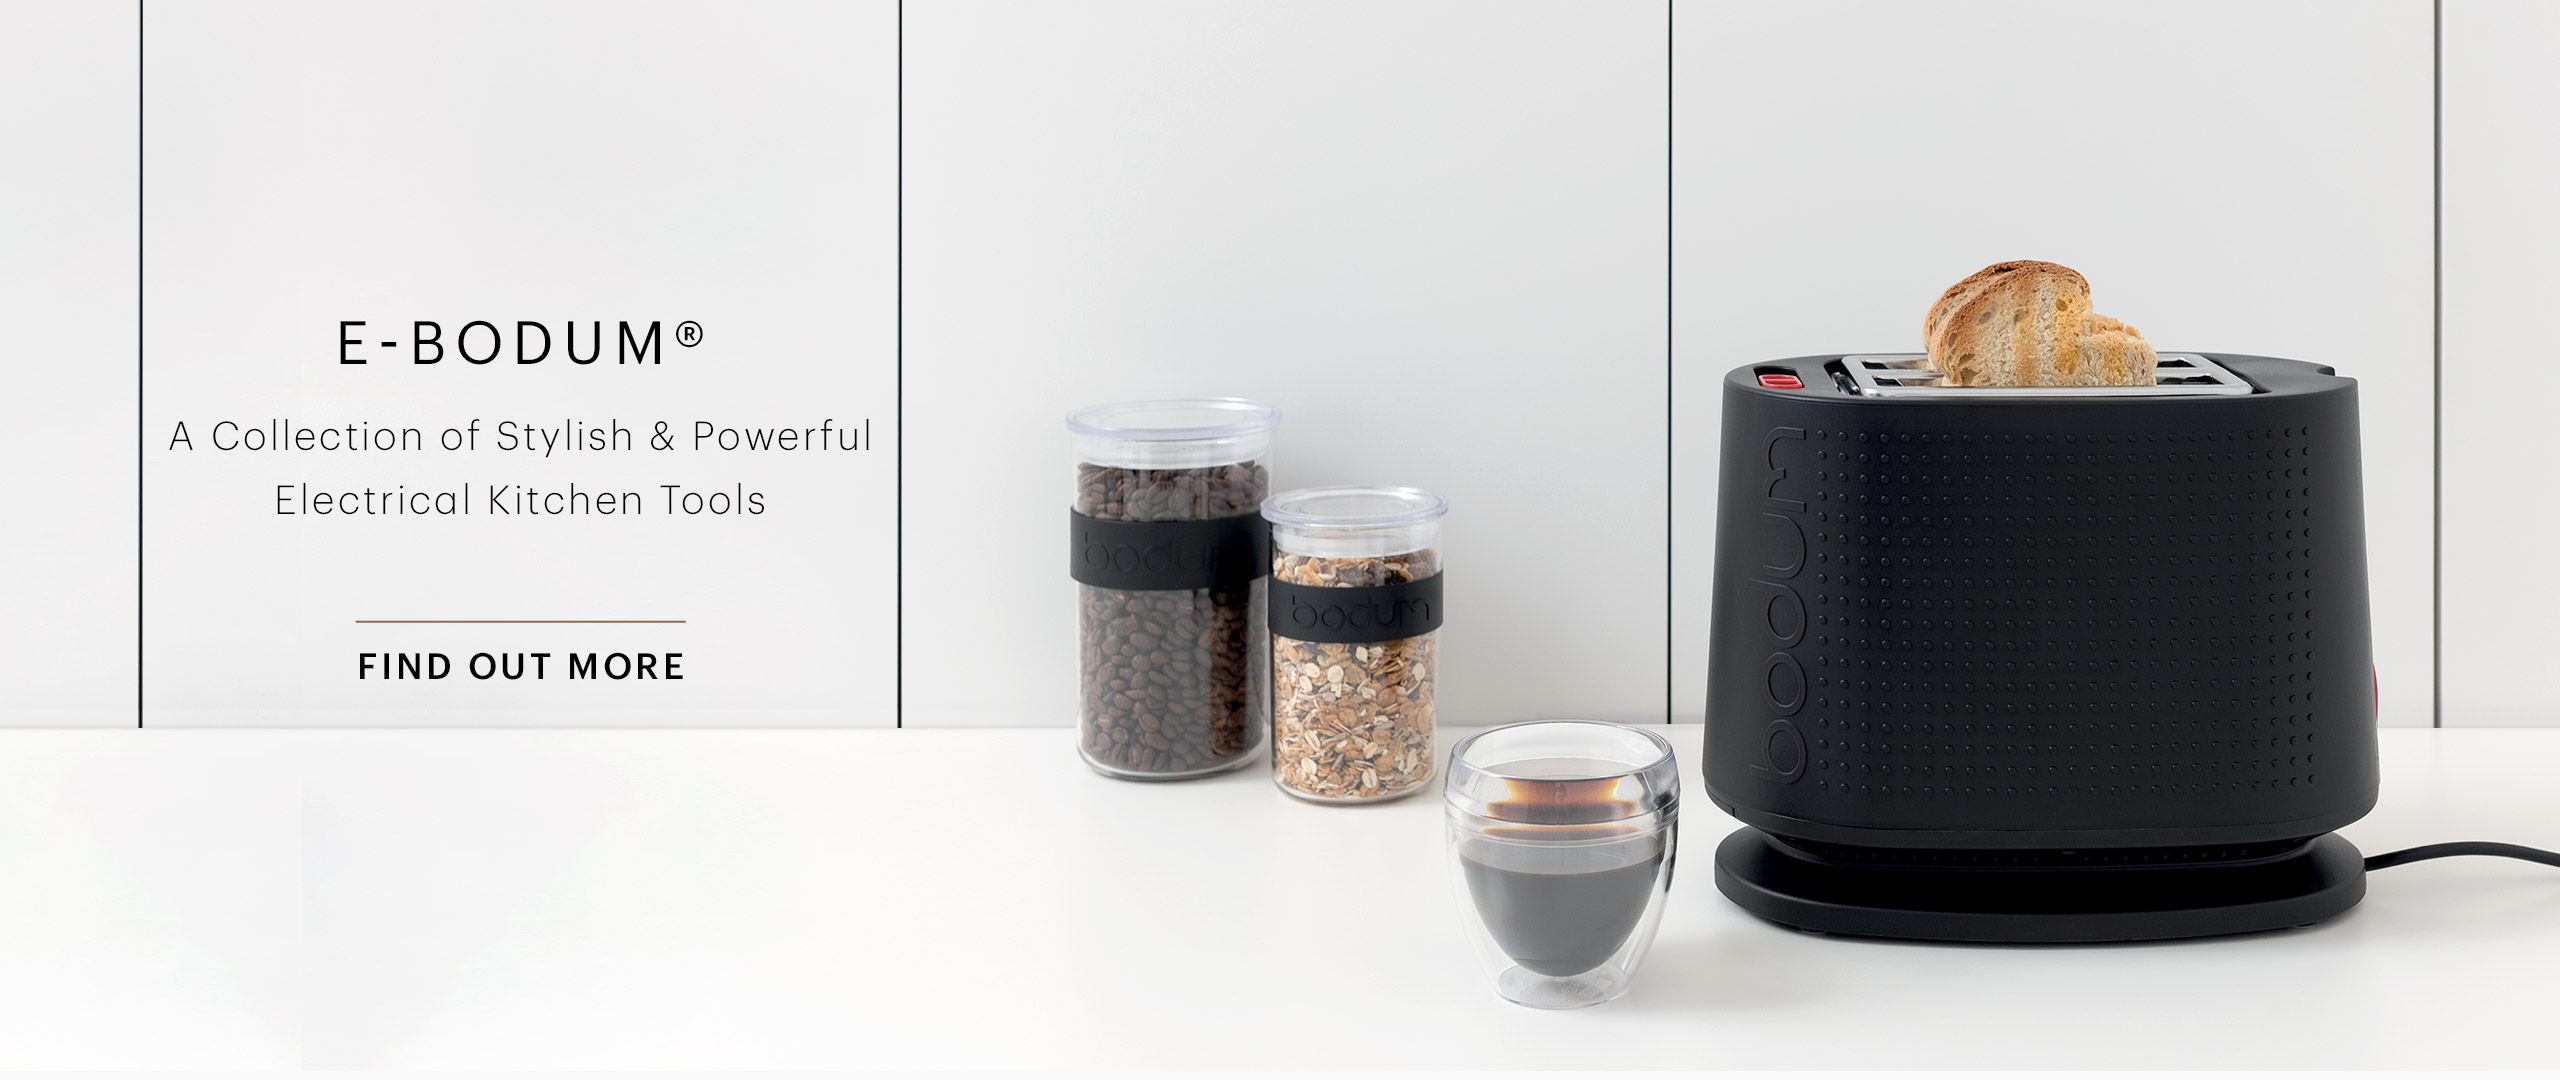 Bodum Pour Over Kaffeebereiter Bodum Inspiration And Innovation For Every Kitchen In The World